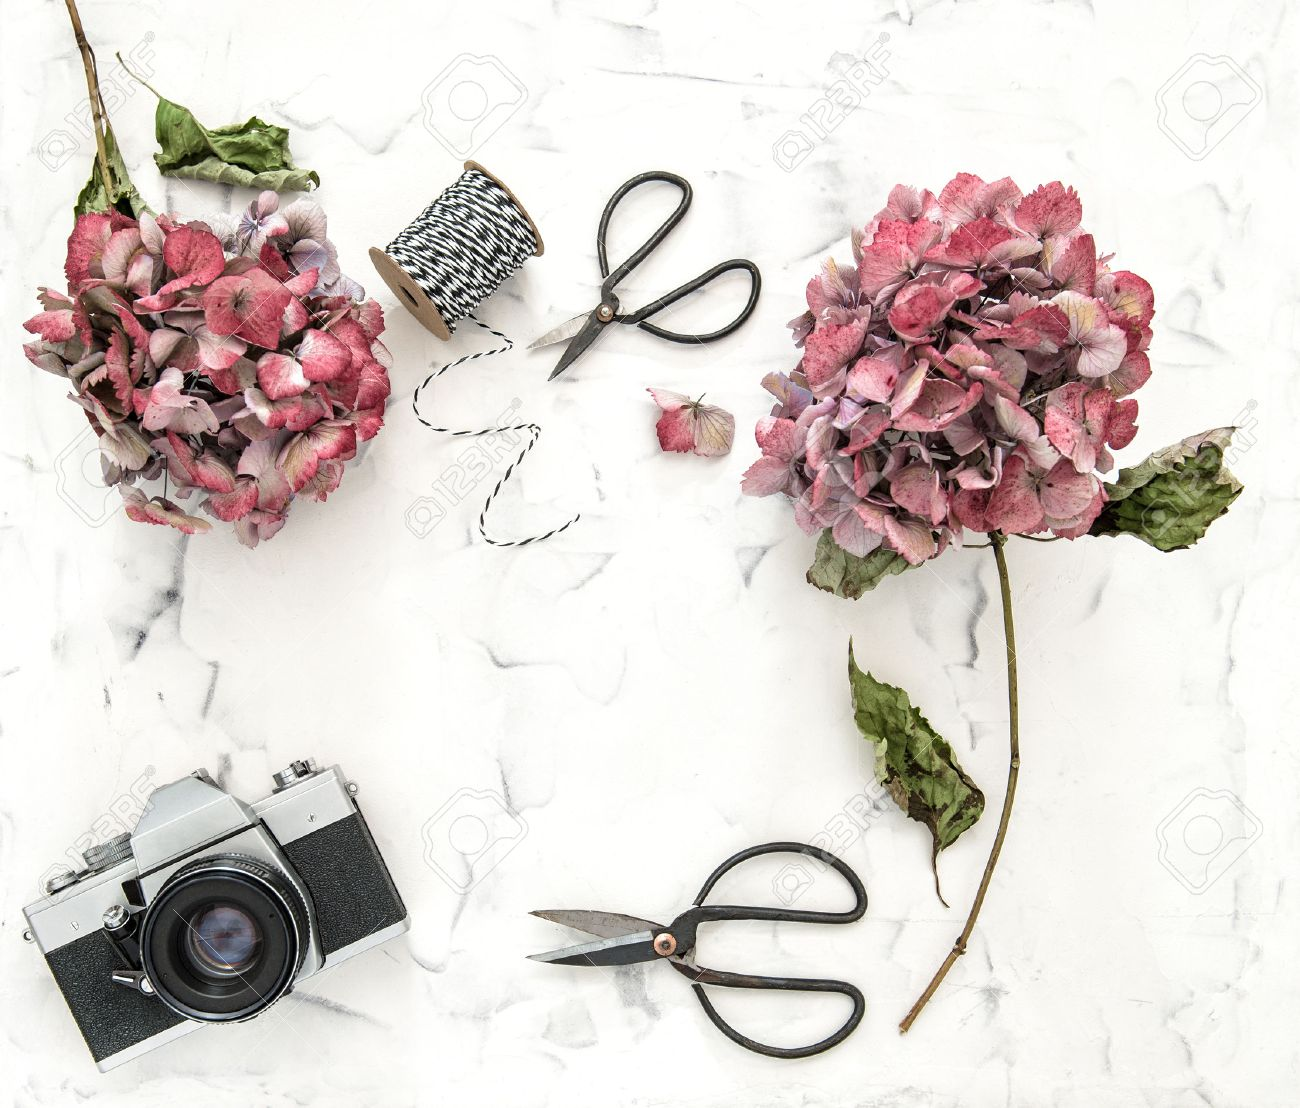 Flat Lay With Hortensia Flowers  Vintage Scissors And Retro Photo     Flat lay with hortensia flowers  vintage scissors and retro photo camera on  white marble background